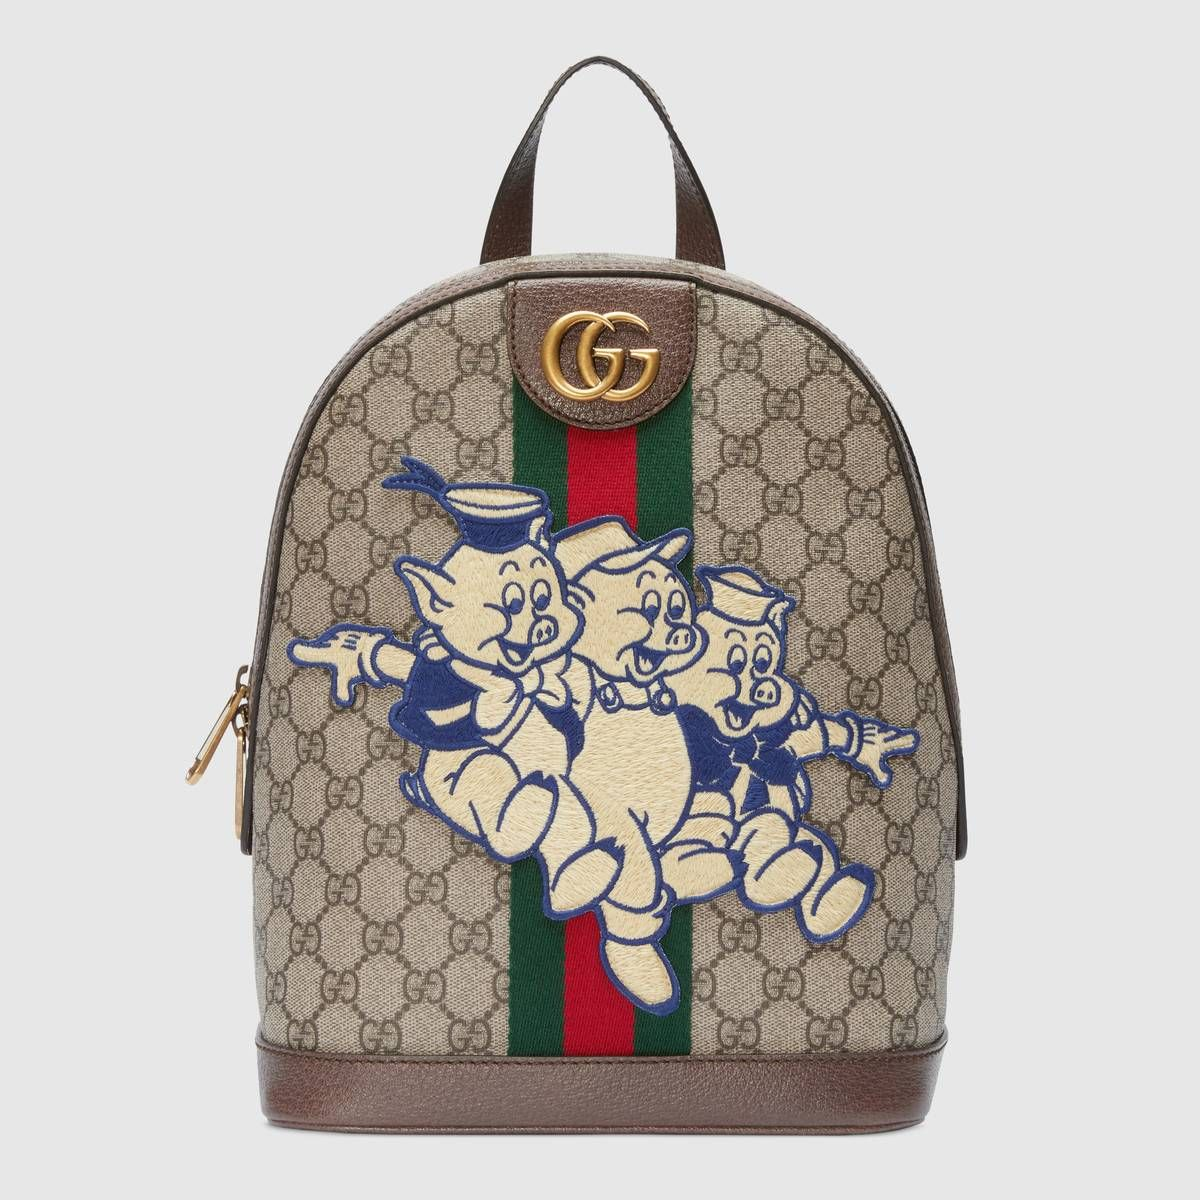 ac1579ff50f Shop the Ophidia GG backpack with Three Little Pigs by Gucci. In honor of  the Chinese calendar s year of the pig